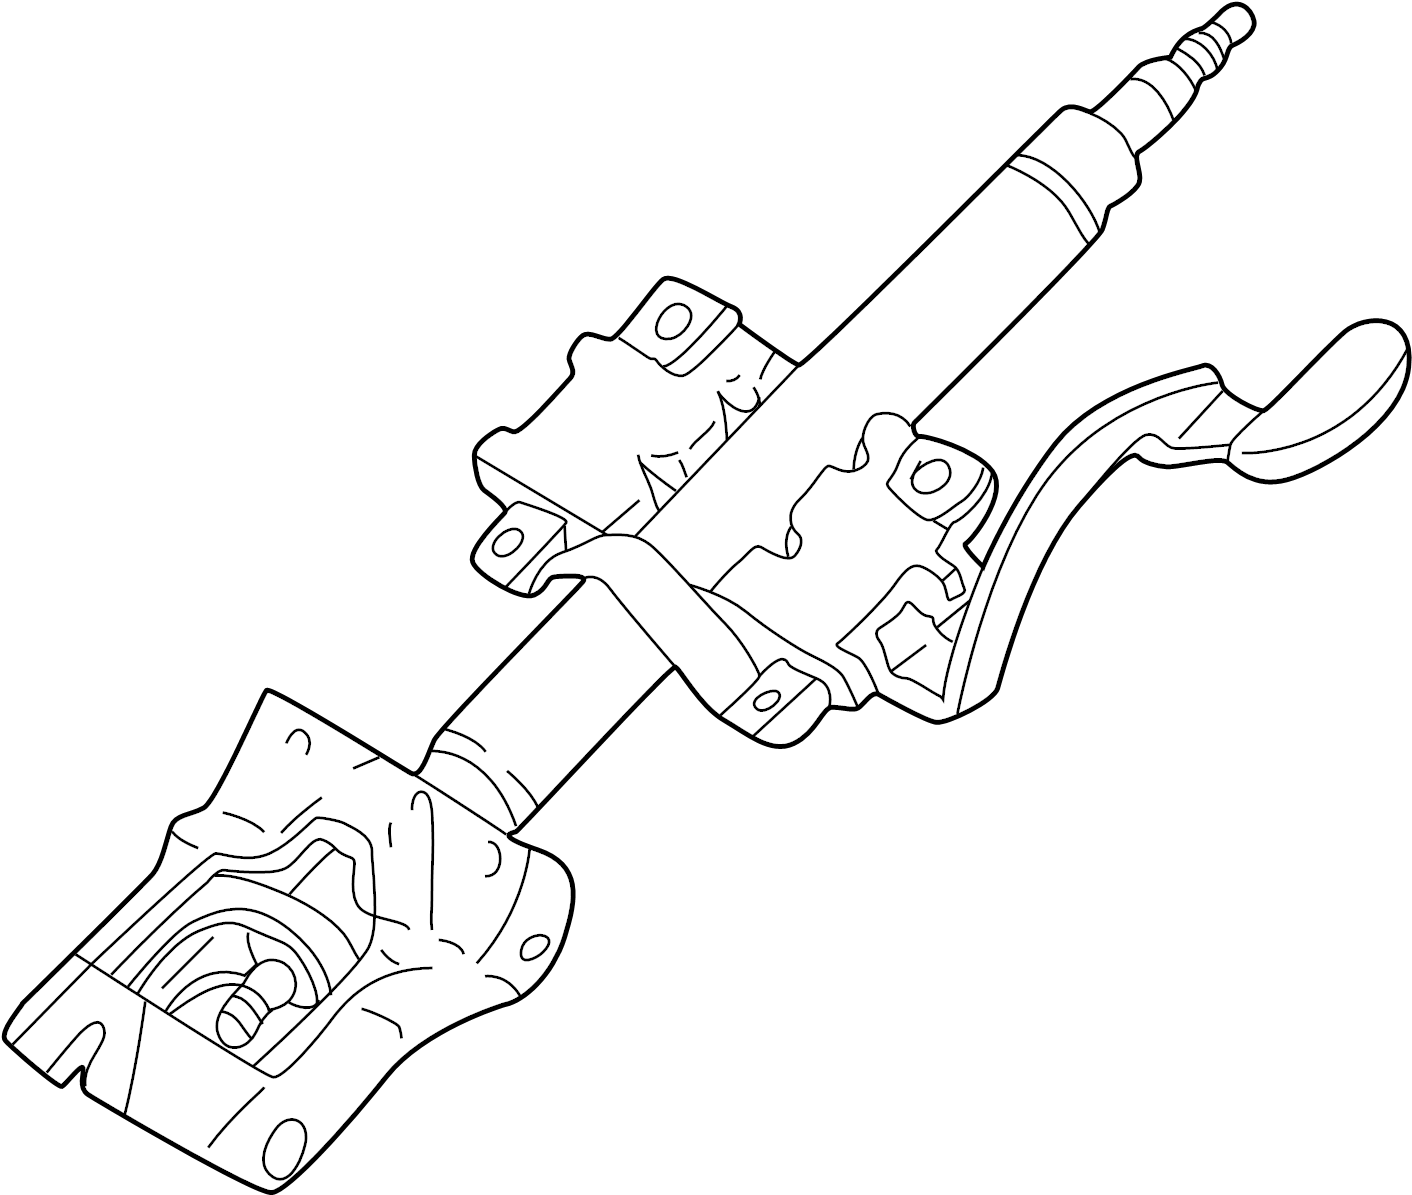 Service manual [2002 Mazda 626 Steering Shaft U Joint